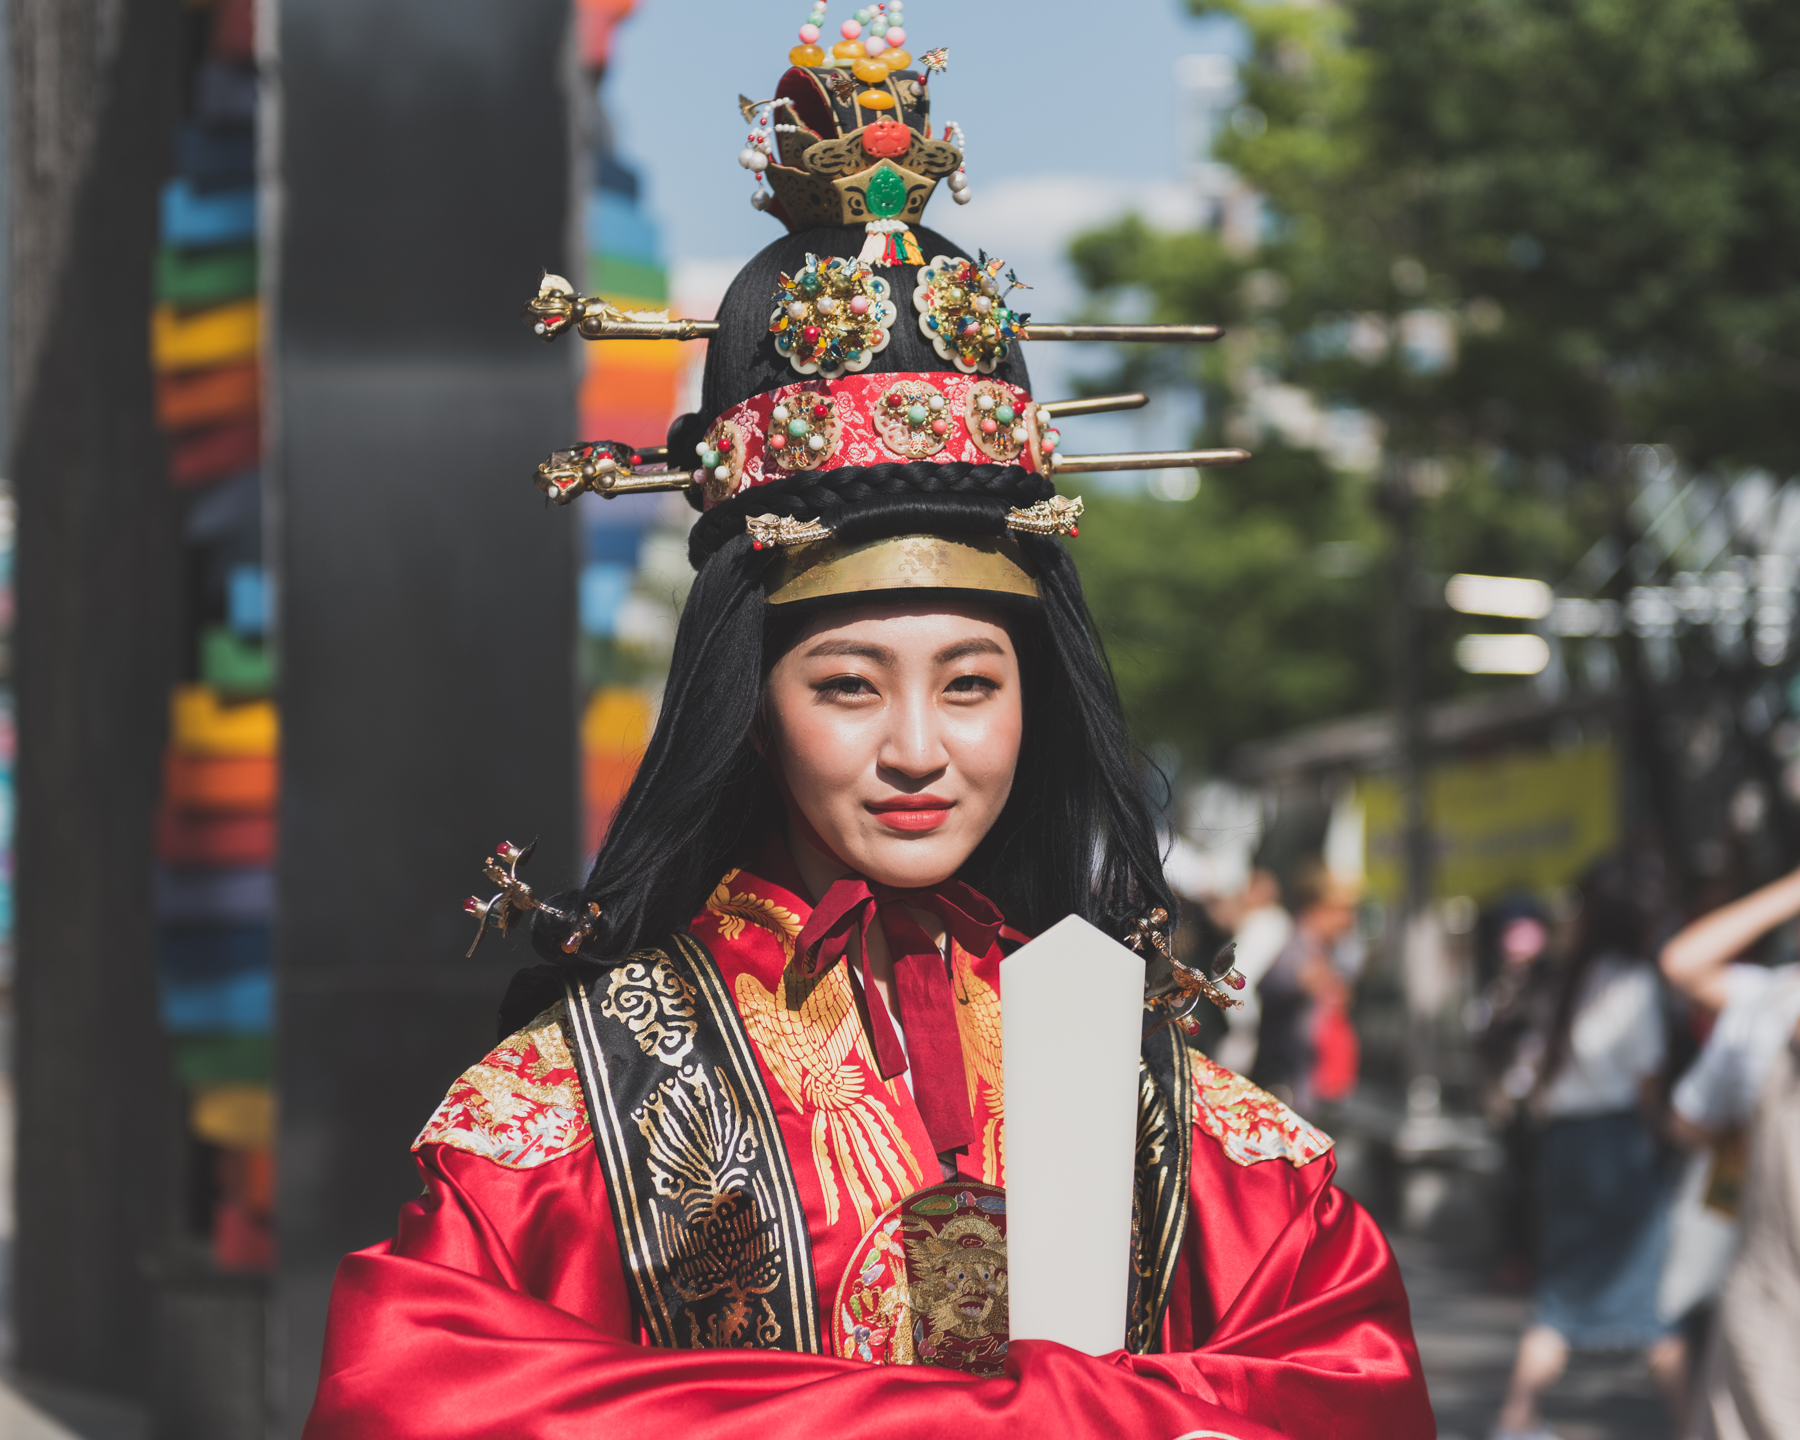 lady in traditional outfit.jpg